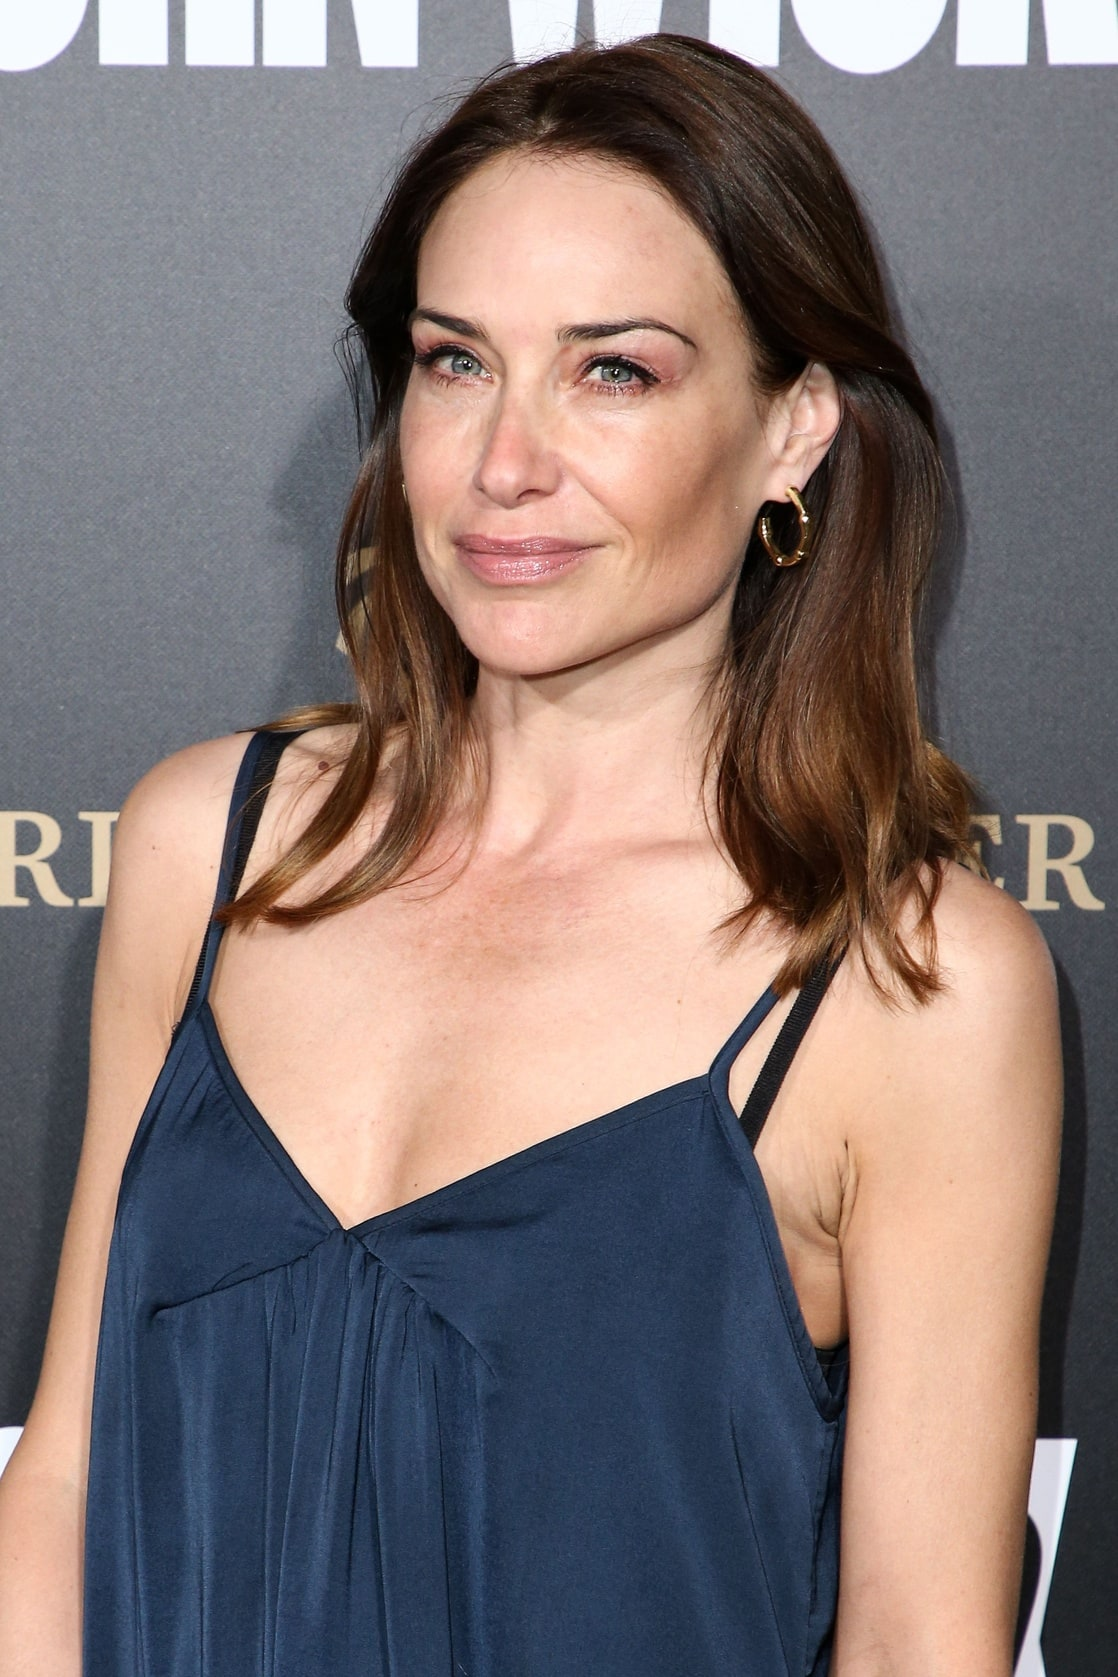 Fotos Claire Forlani nude (32 photo), Tits, Fappening, Selfie, cleavage 2019